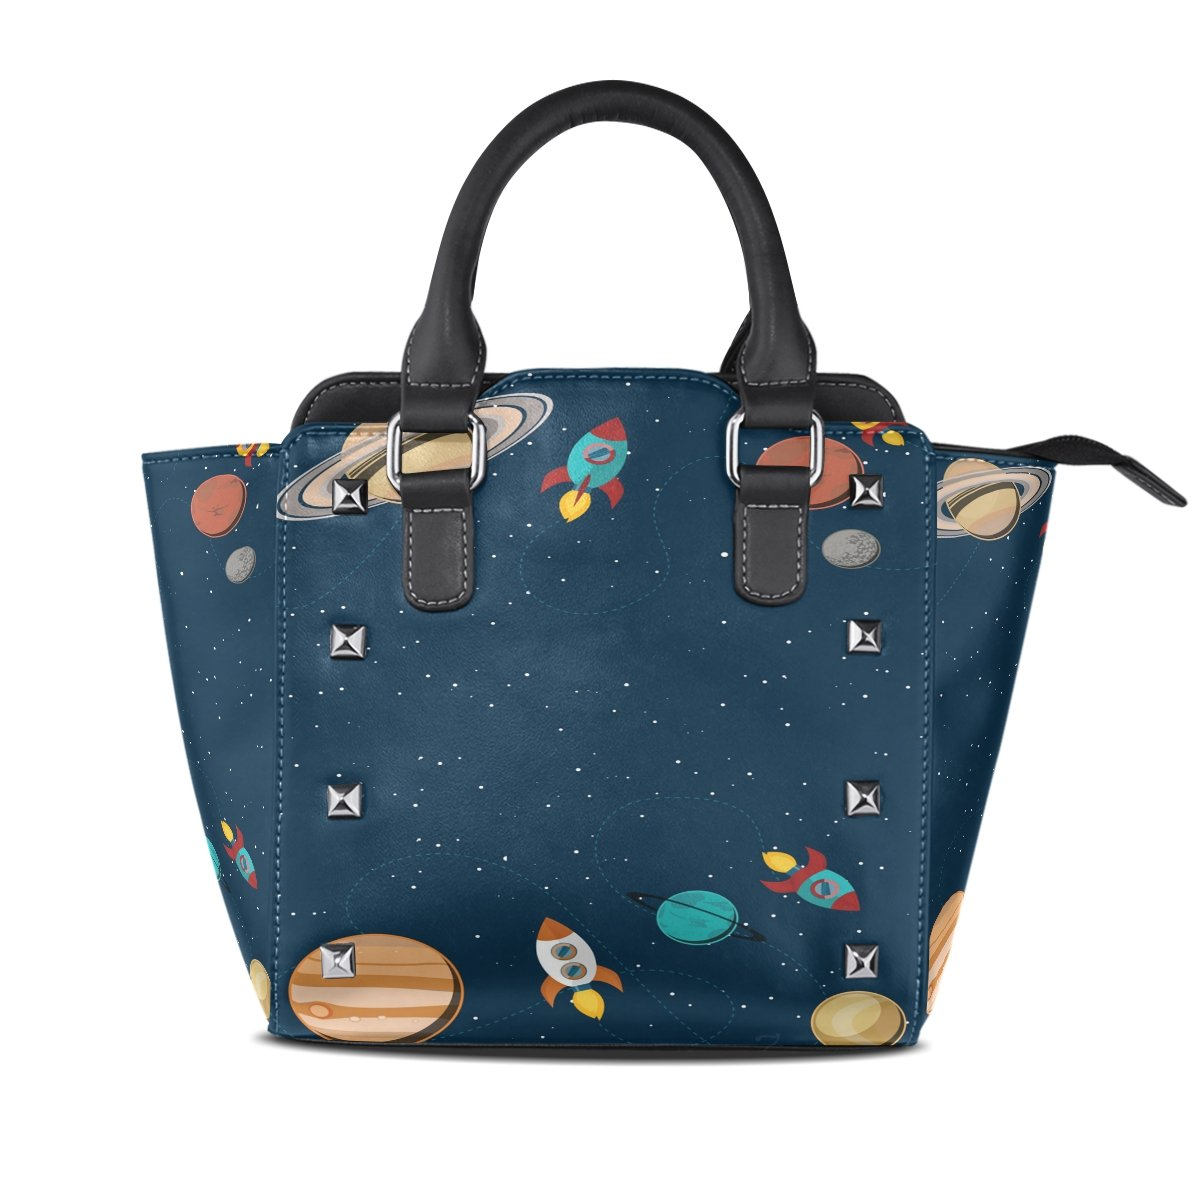 Womens Genuine Leather Hangbags Tote Bags Outer Space Purse Shoulder Bags